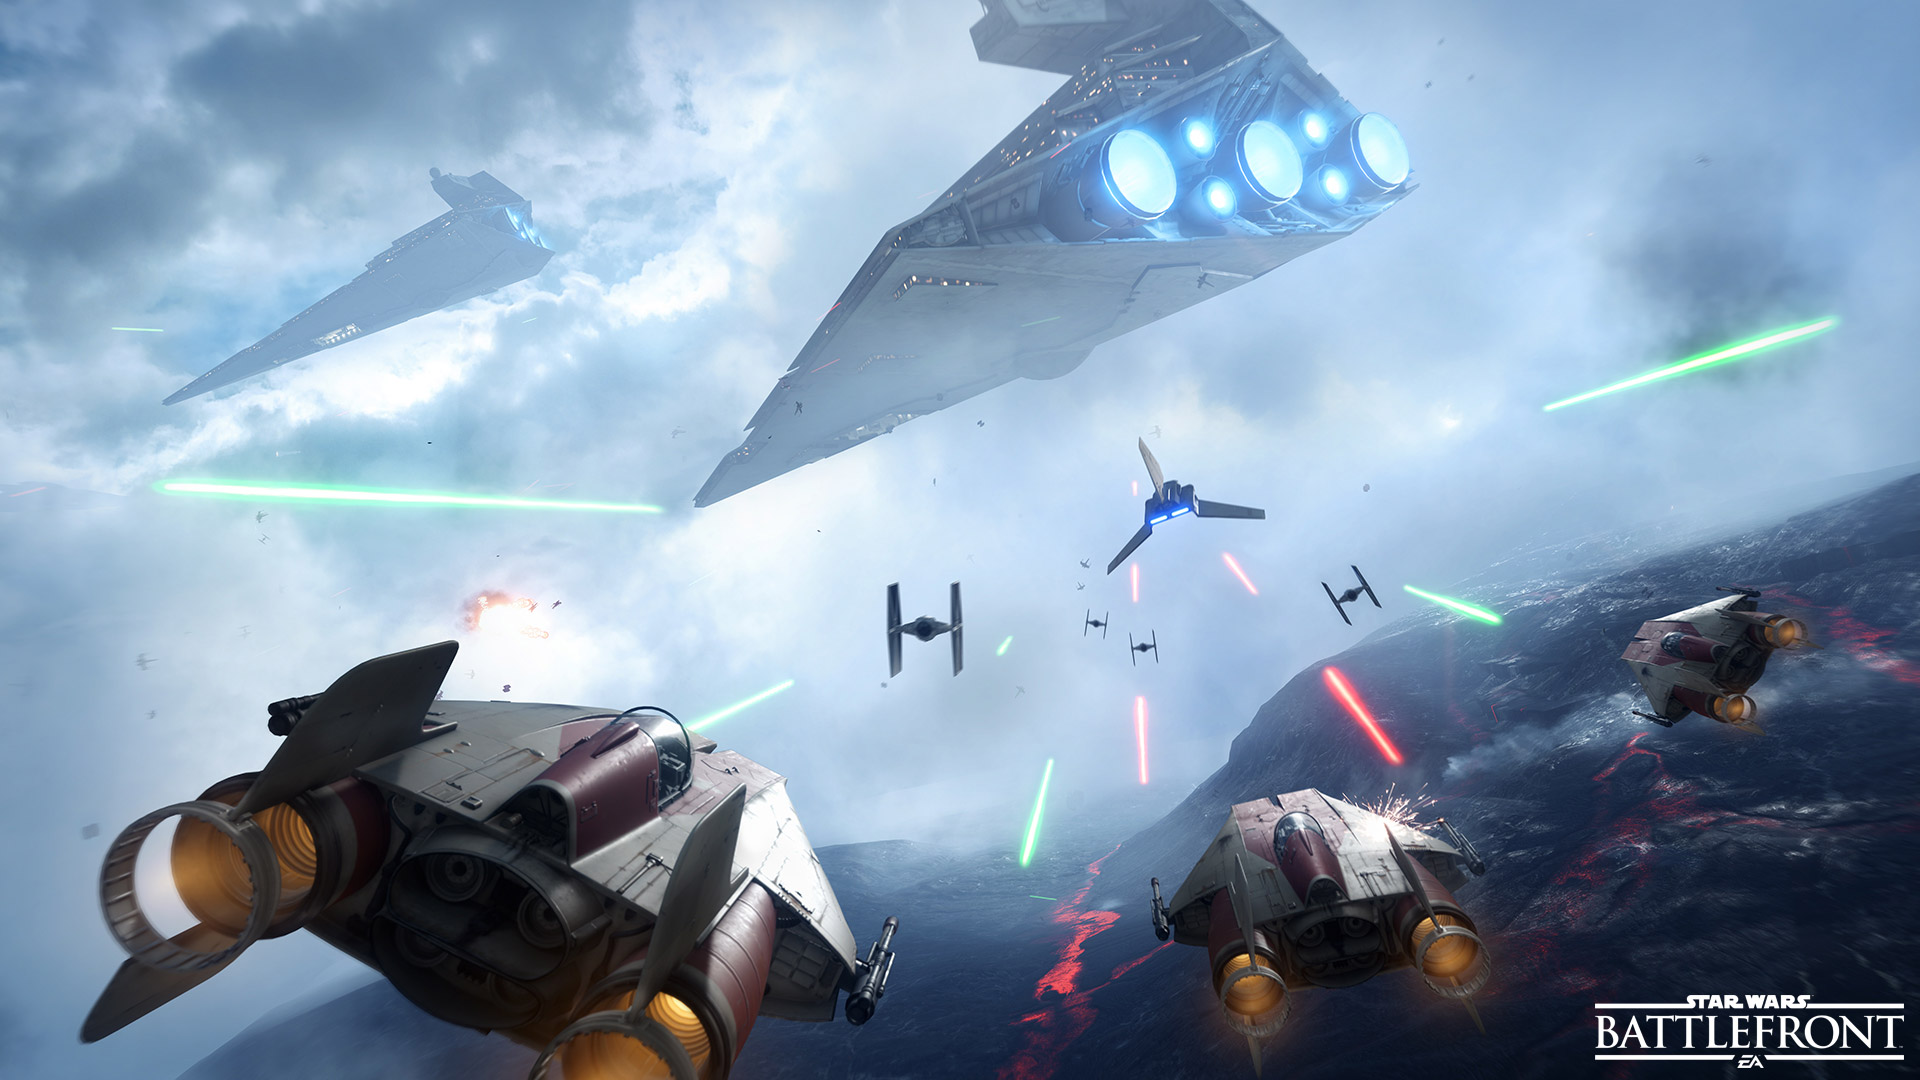 Does Star Wars Battlefront Even Need Single Player?